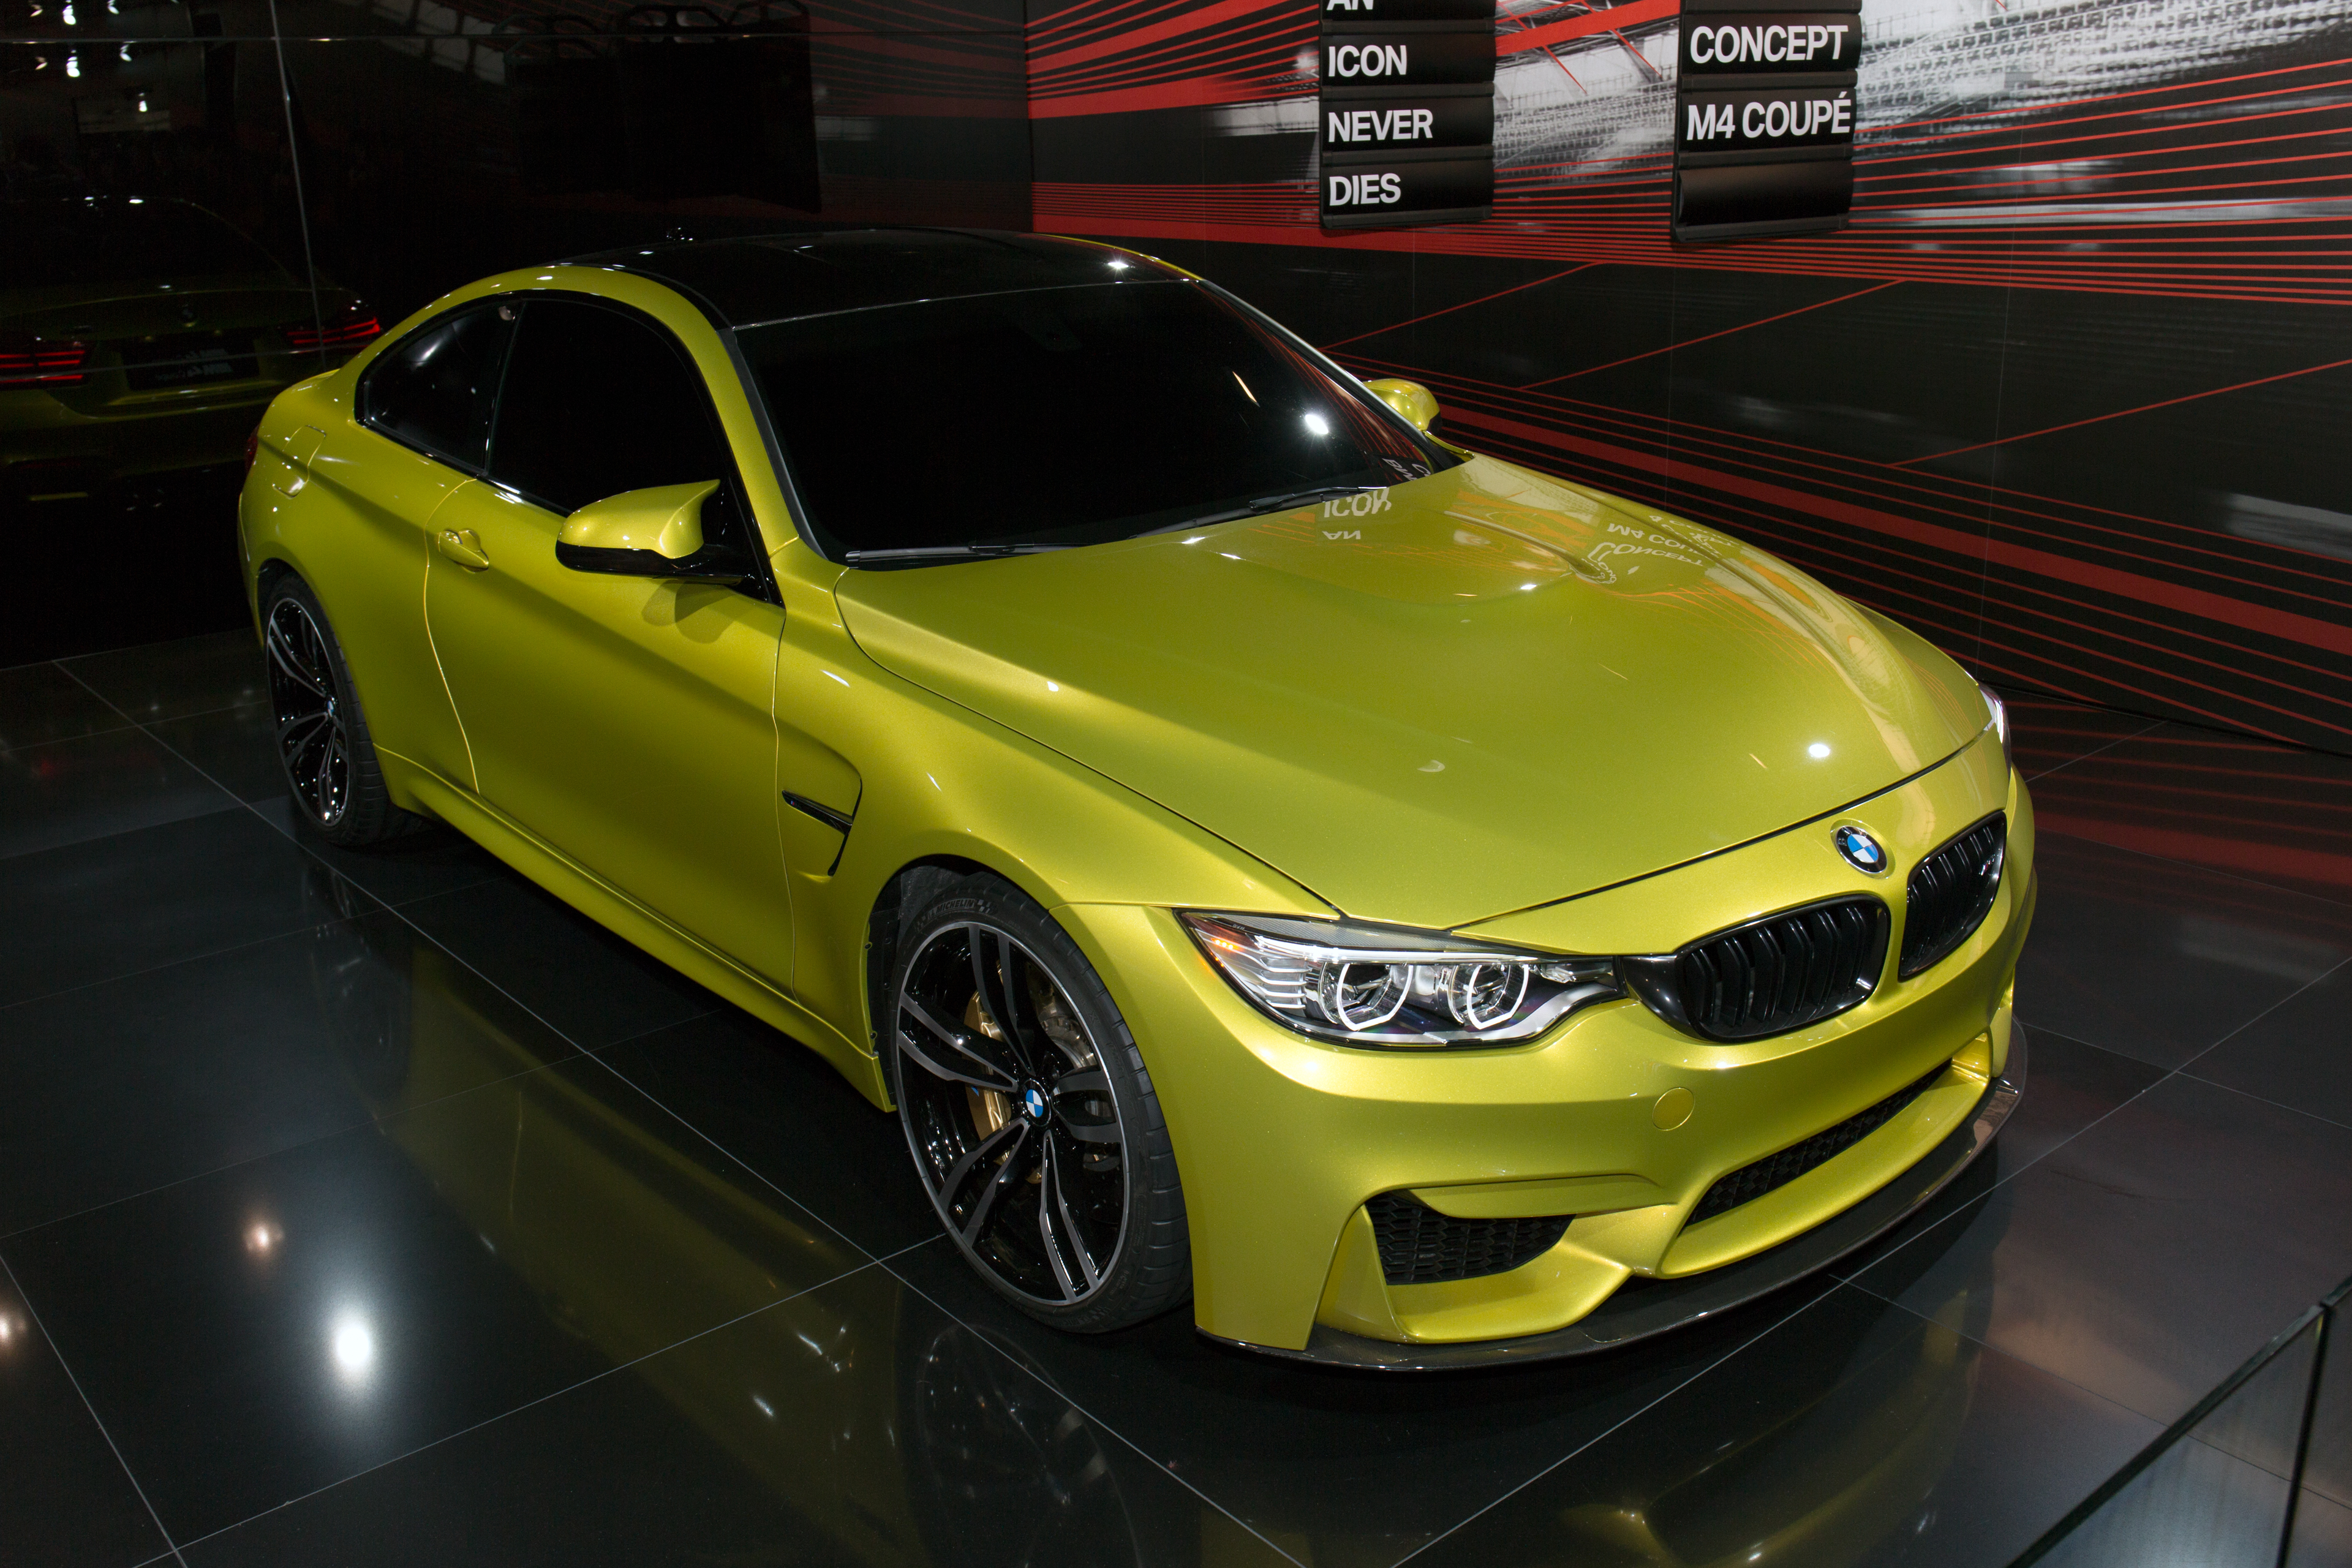 Bmw concept m4 coupe front right 2013 tokyo motor show jpg